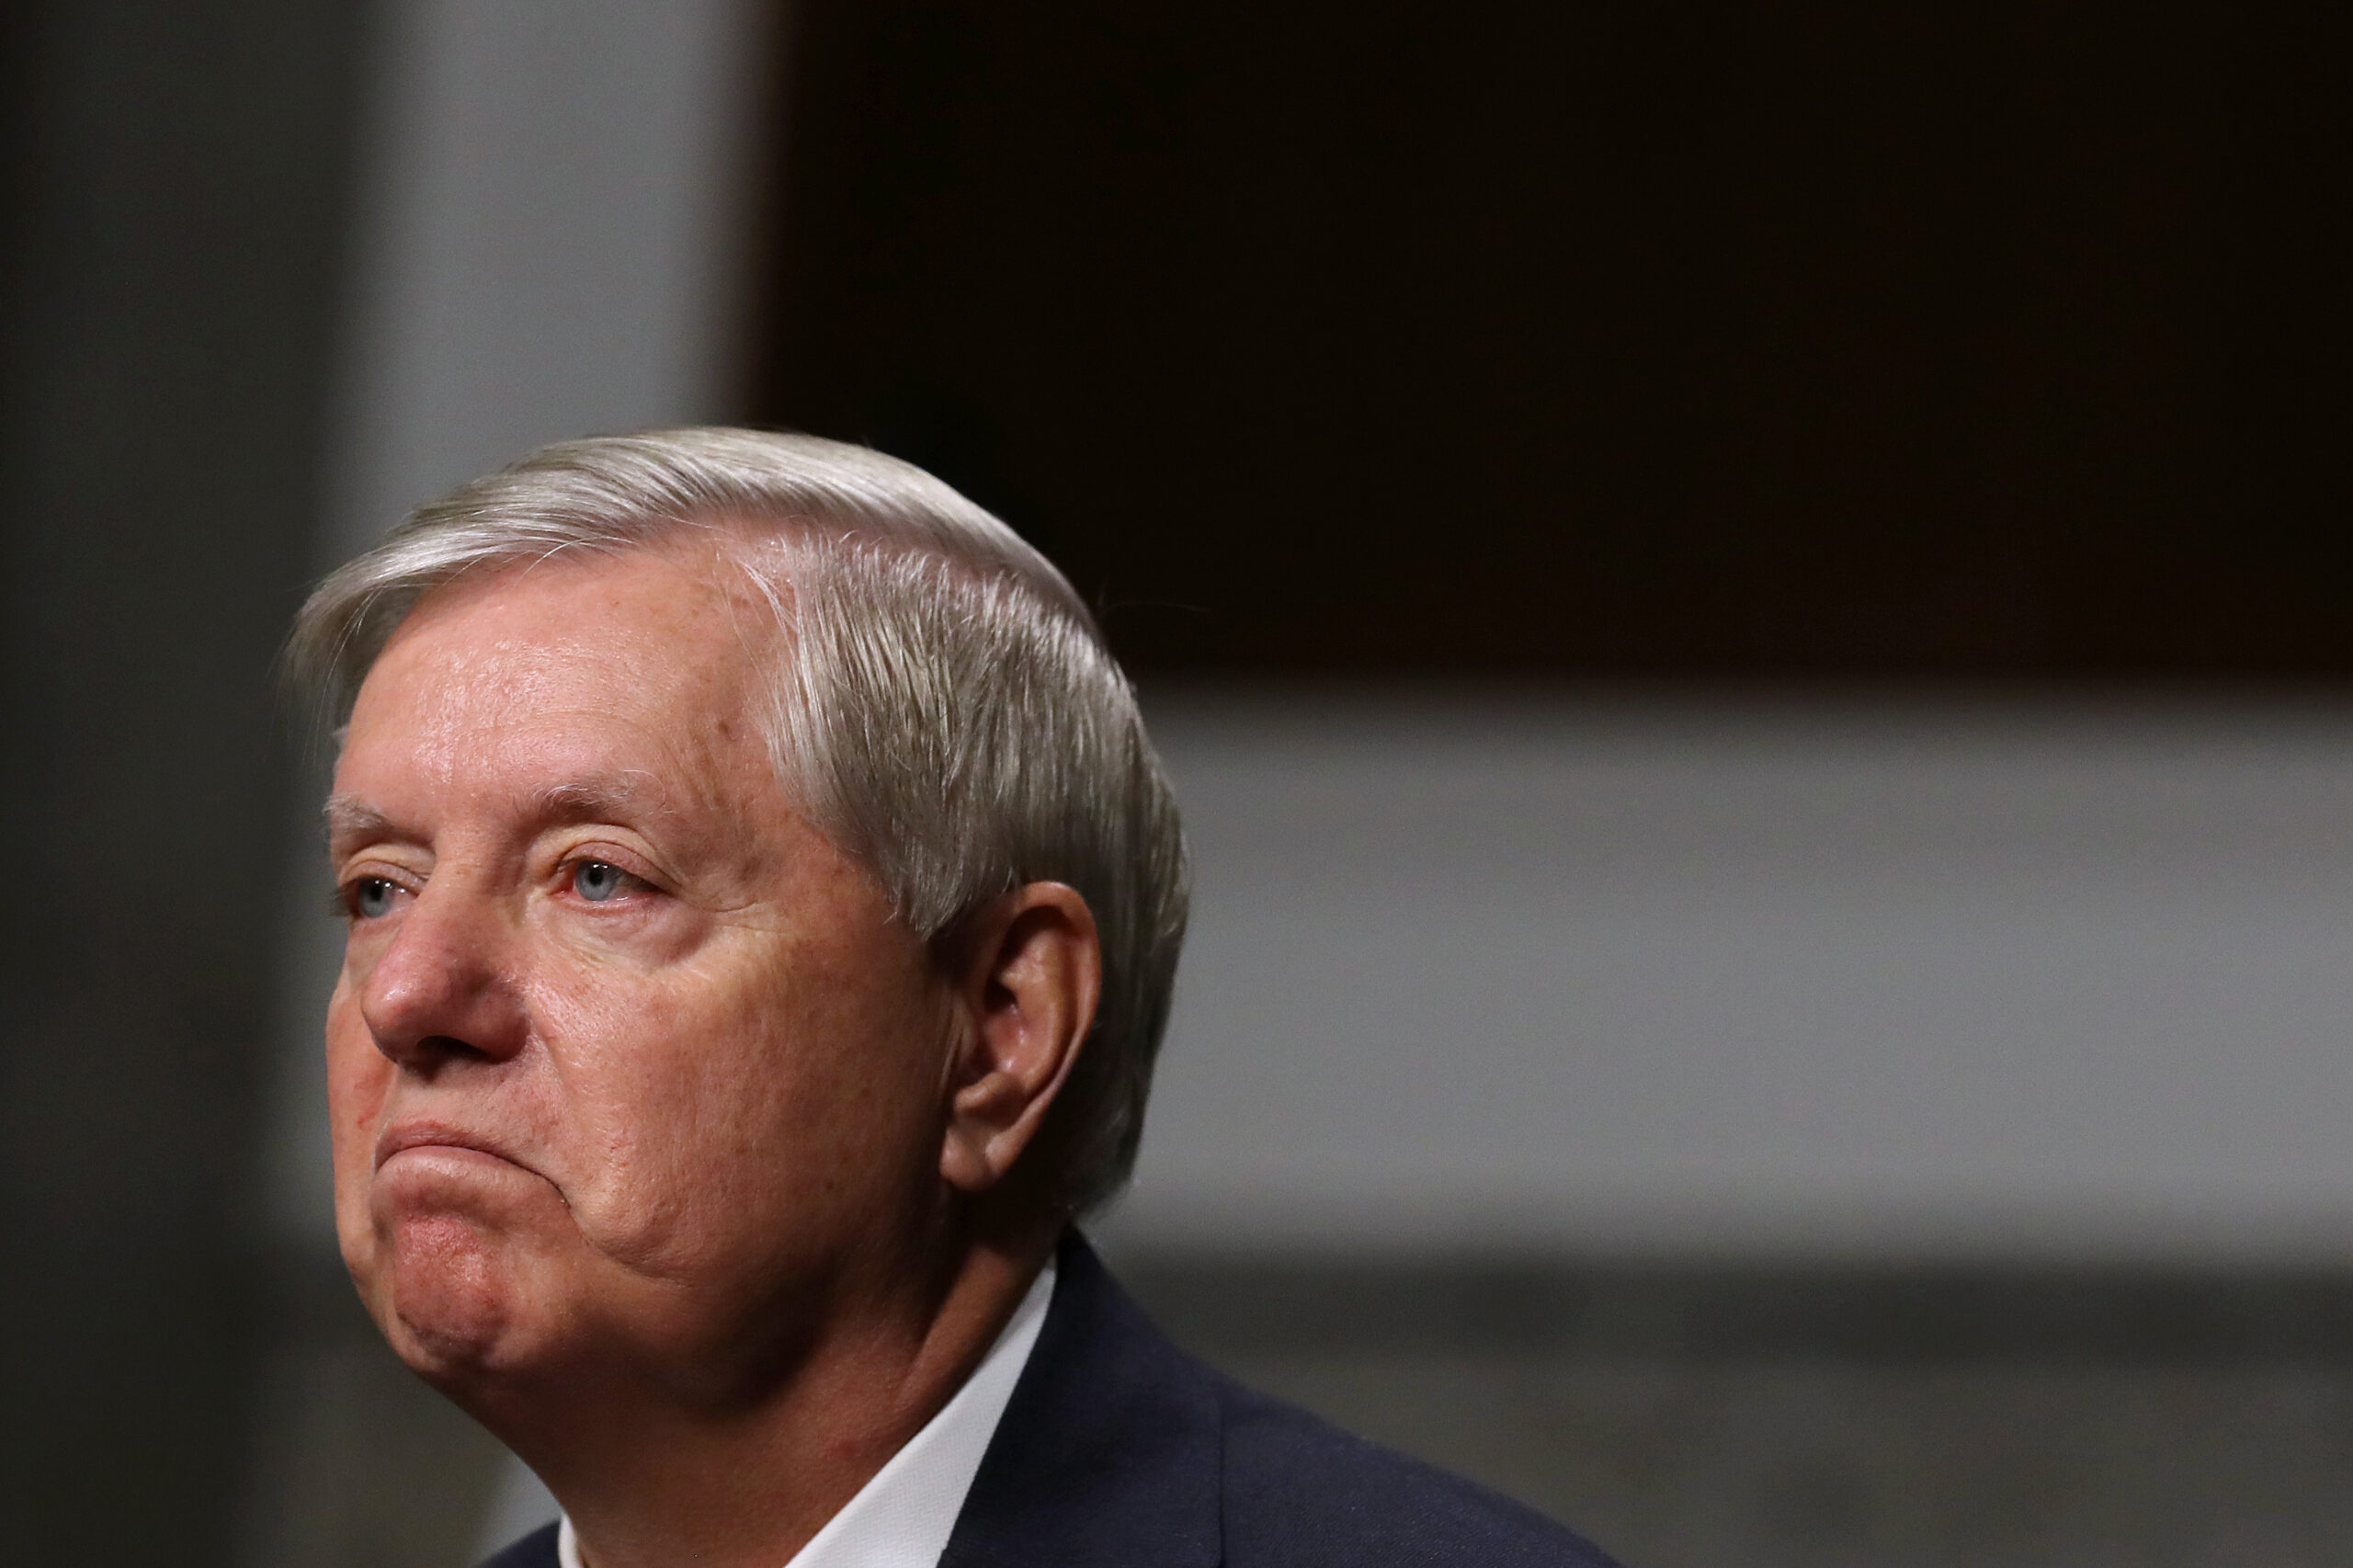 Lindsey Graham Explains Why He Fist Bumped Kamala Harris Despite Refusing to Acknowledge Biden's Victory – Newsweek